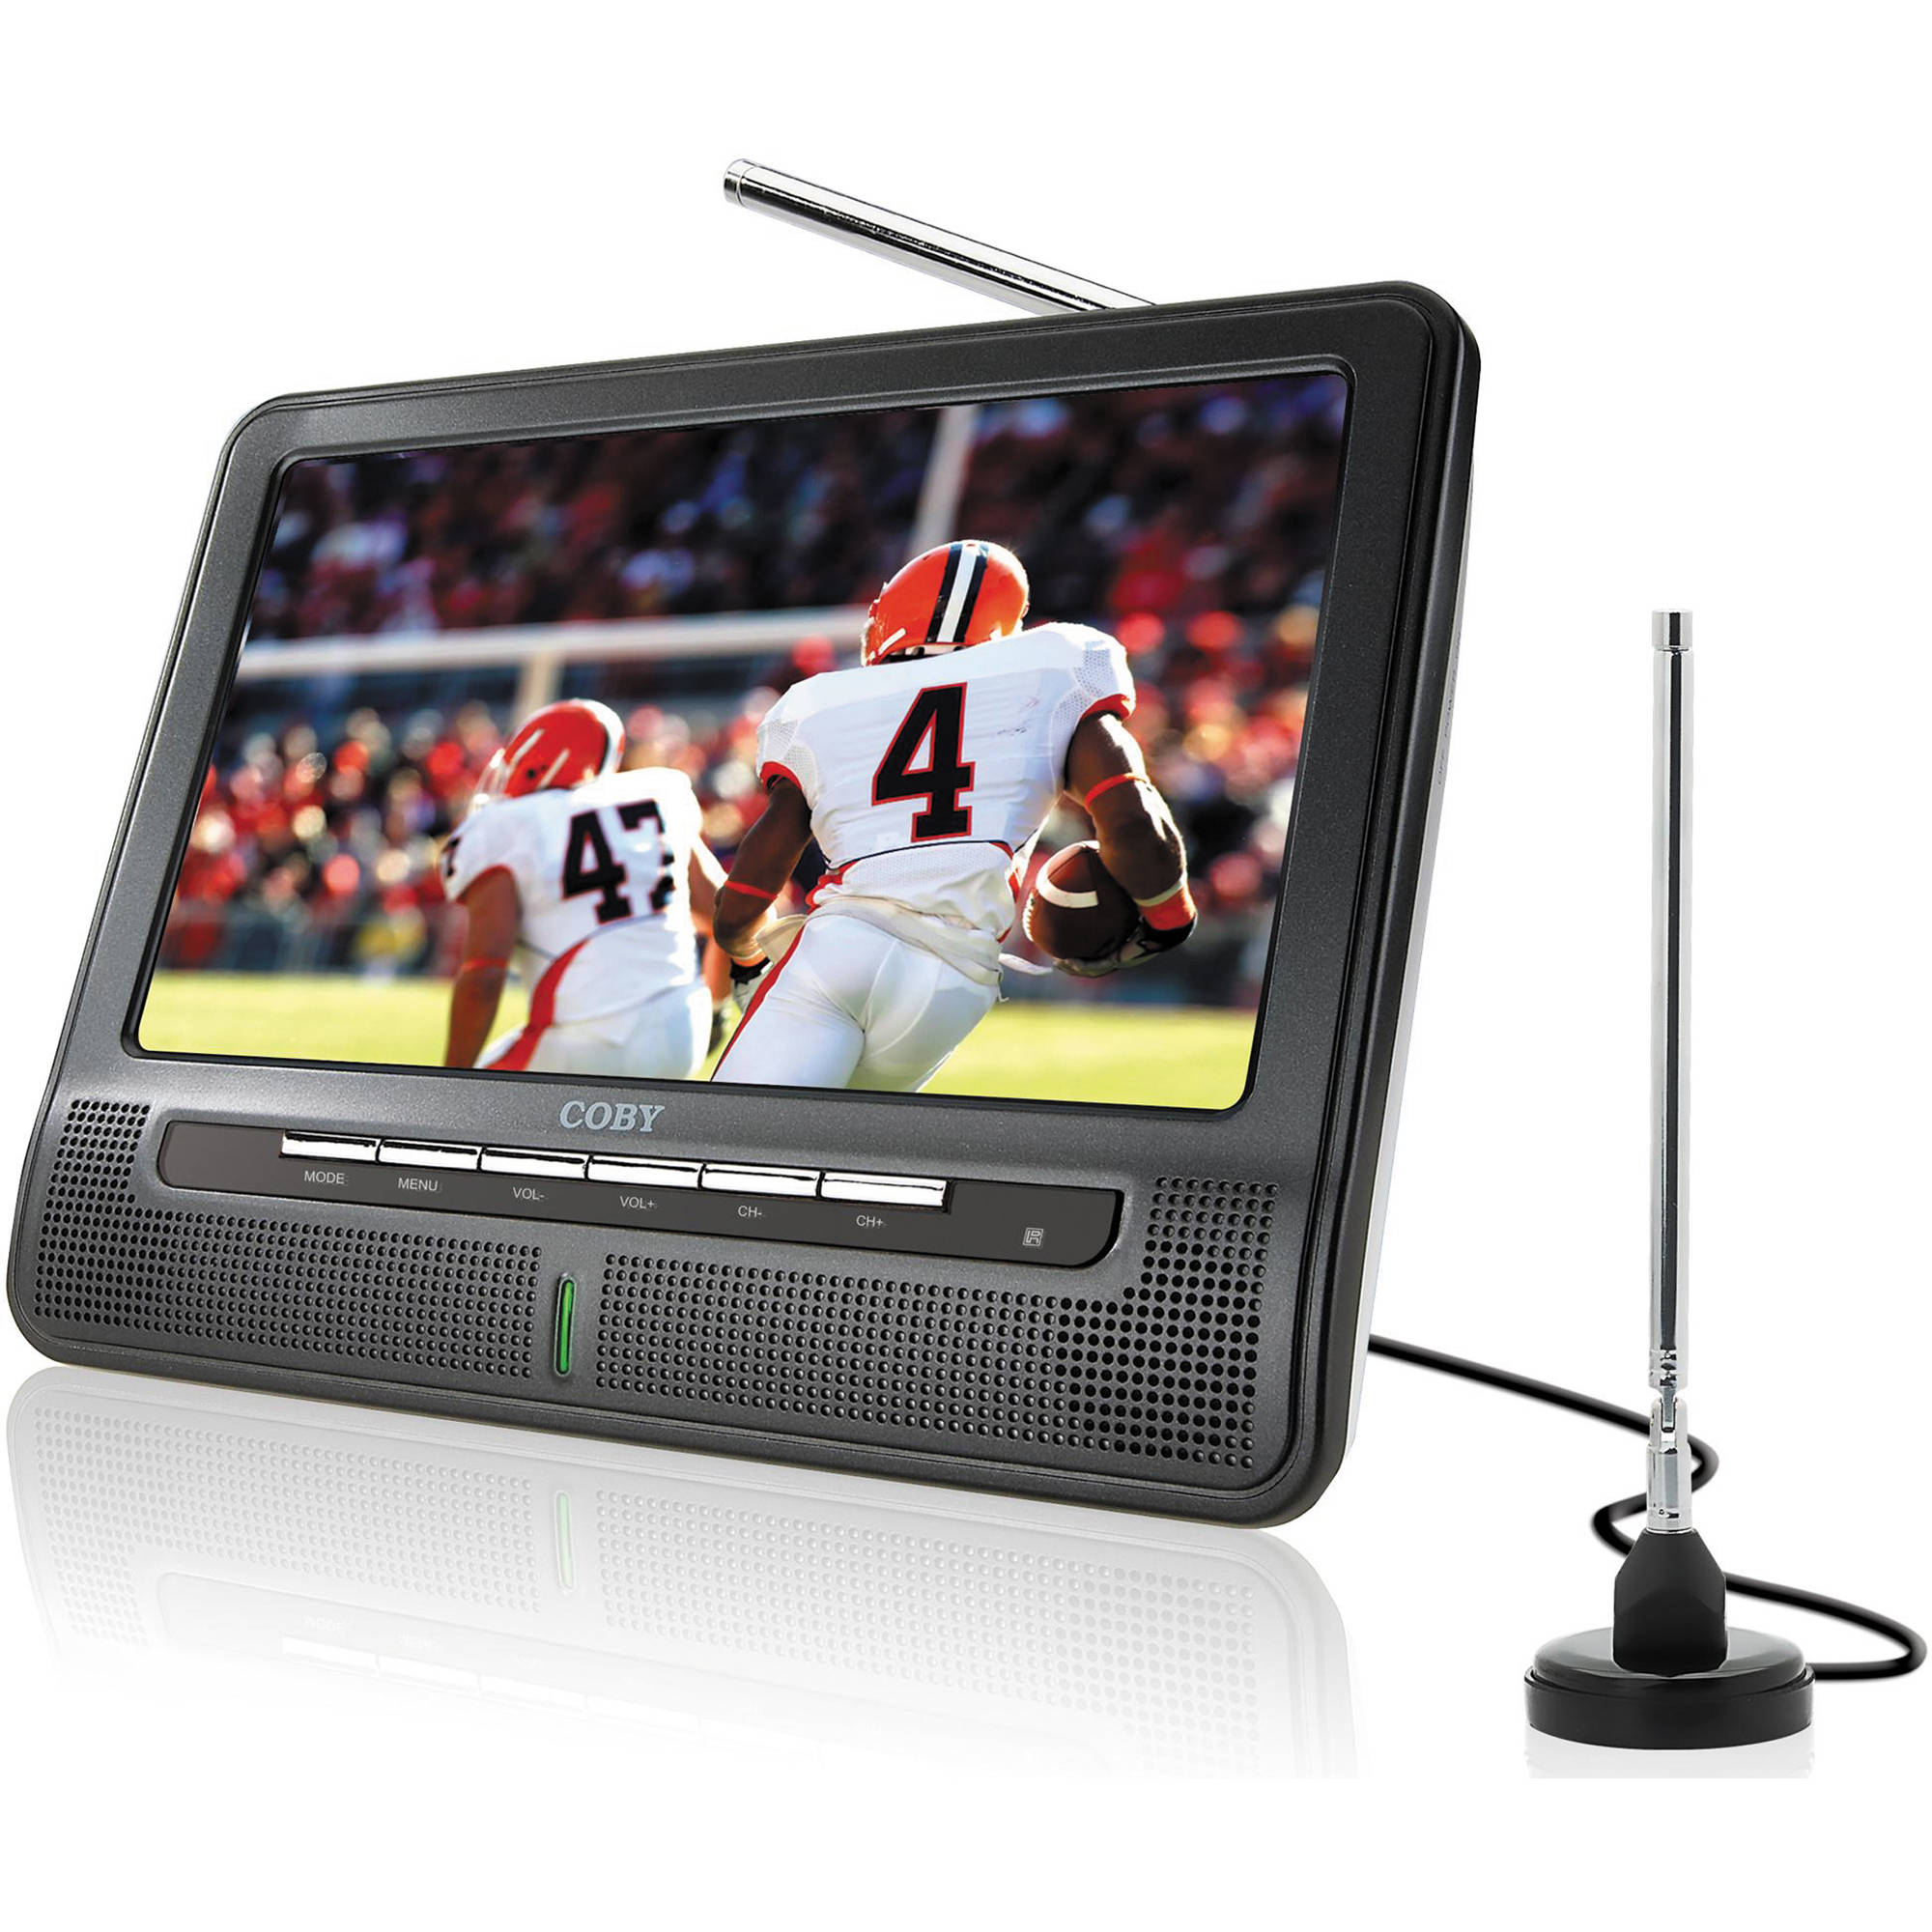 Top 10 Best Portable Tvs ⋆ Shopcalypsecom. Greendale Physical Therapy Hvac Schools In Ct. How To Get Epic Certification Healthcare. The Most Common Eating Disorder Is. Embalming Schools In California. Recommended Home Security System. Accredited Online College Algebra Courses. Insurance Construction Types. Amc On Att Uverse Channel Nurses Aid Classes